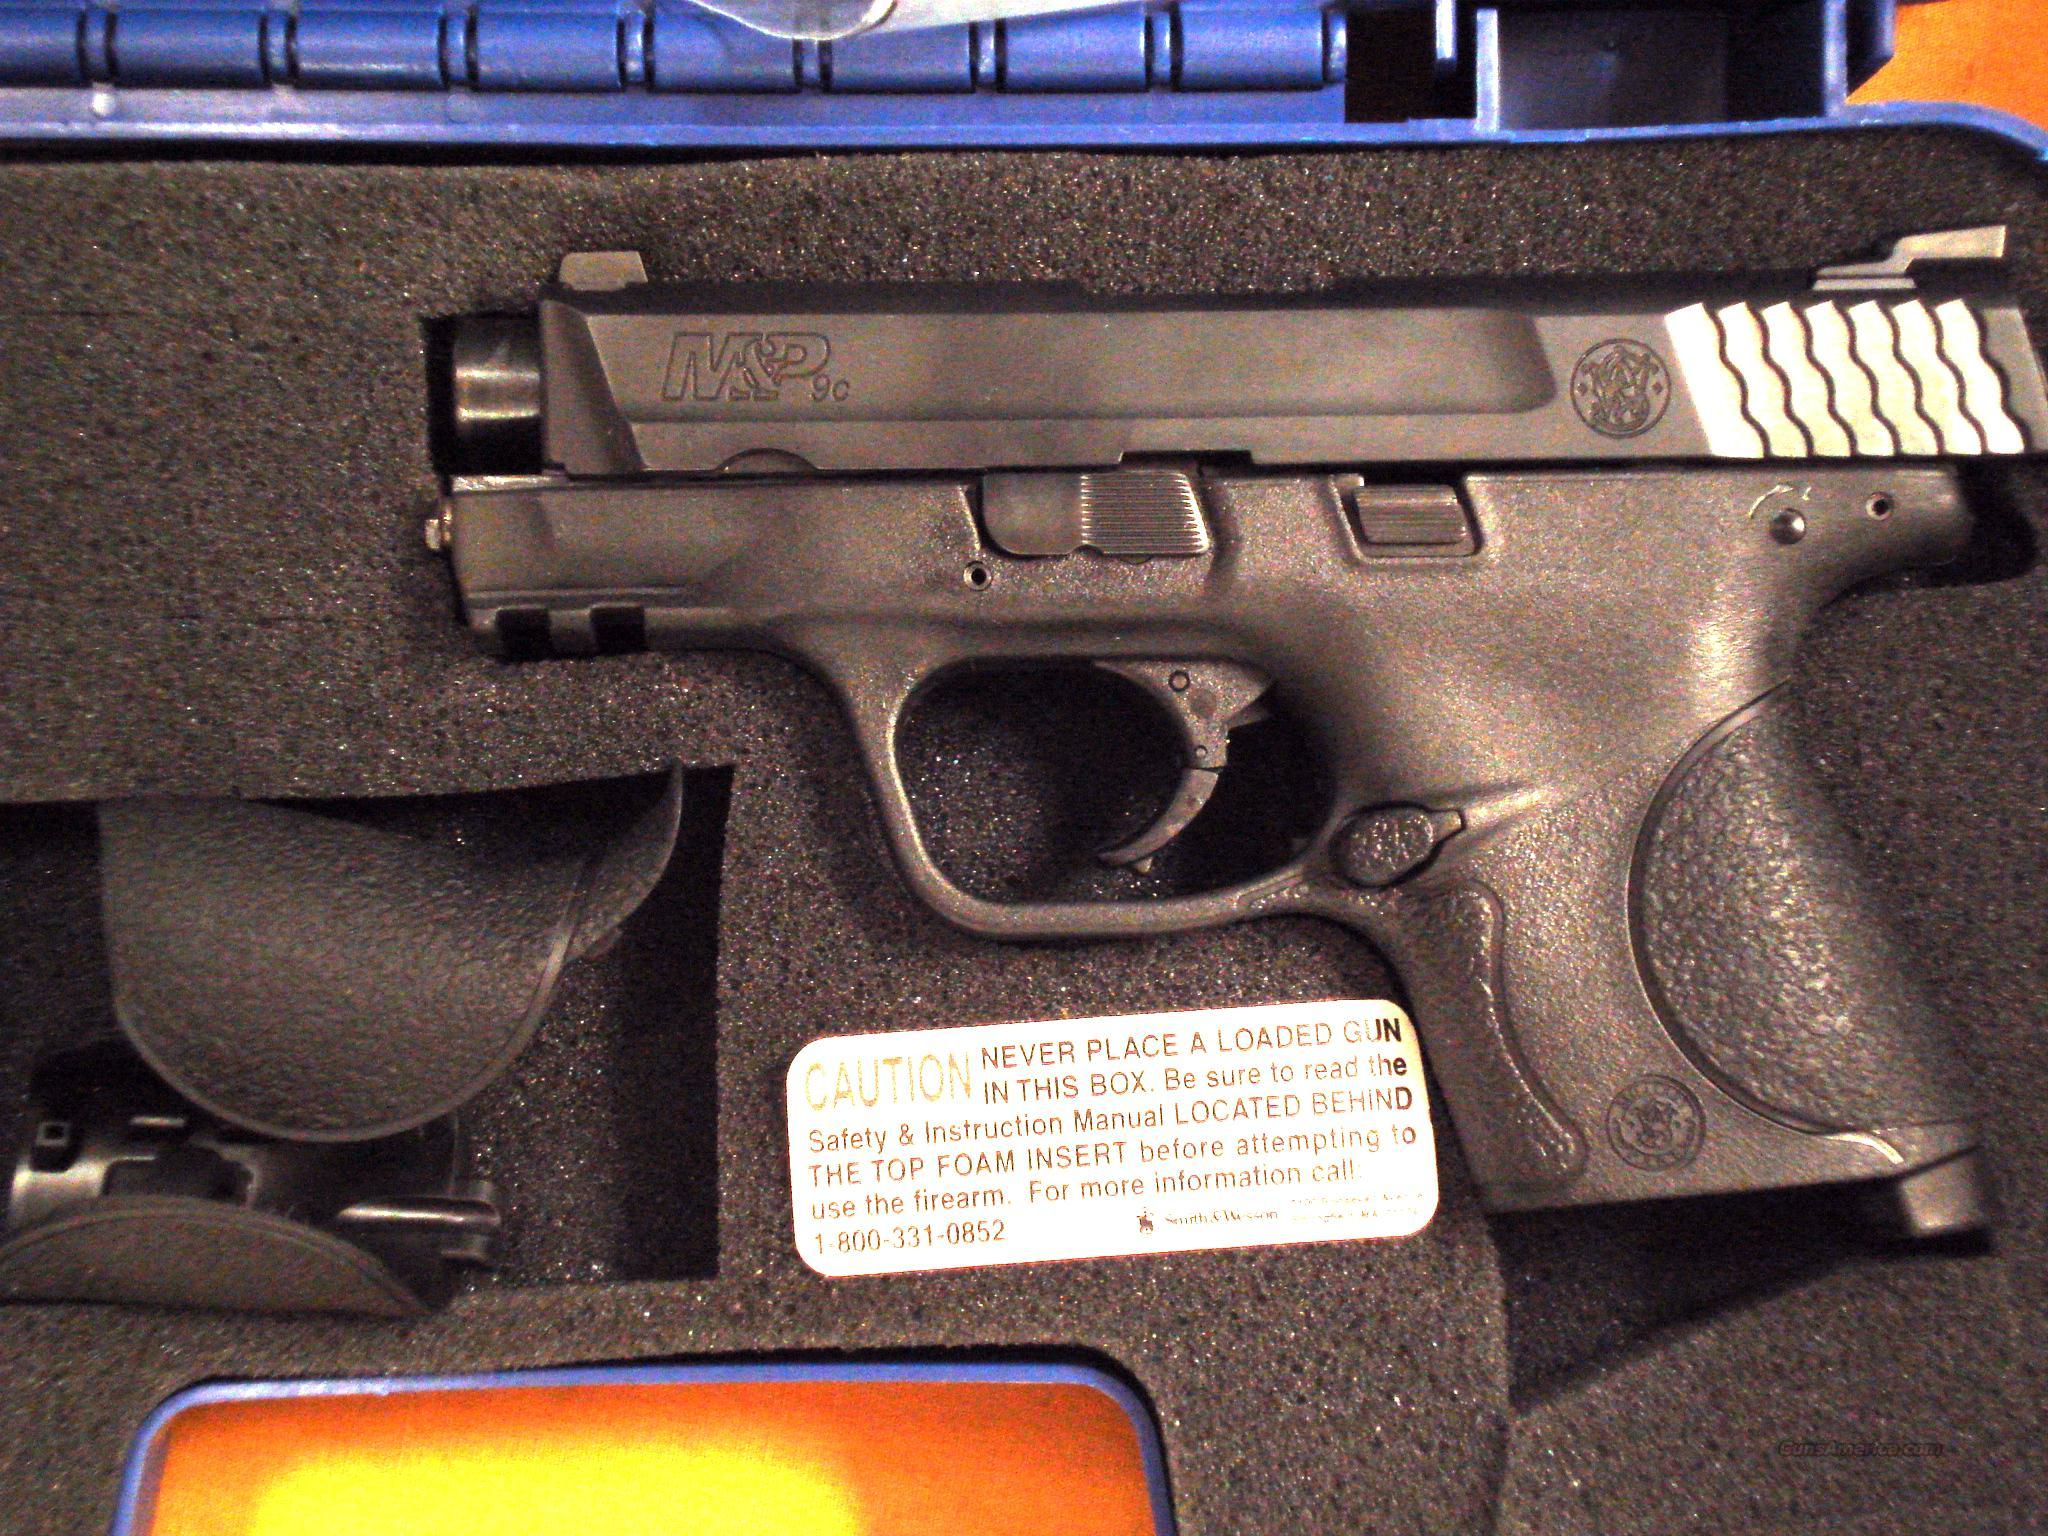 "S&W M&P 9MM 31/2"" BARREL  Guns > Pistols > Smith & Wesson Pistols - Autos > Polymer Frame"